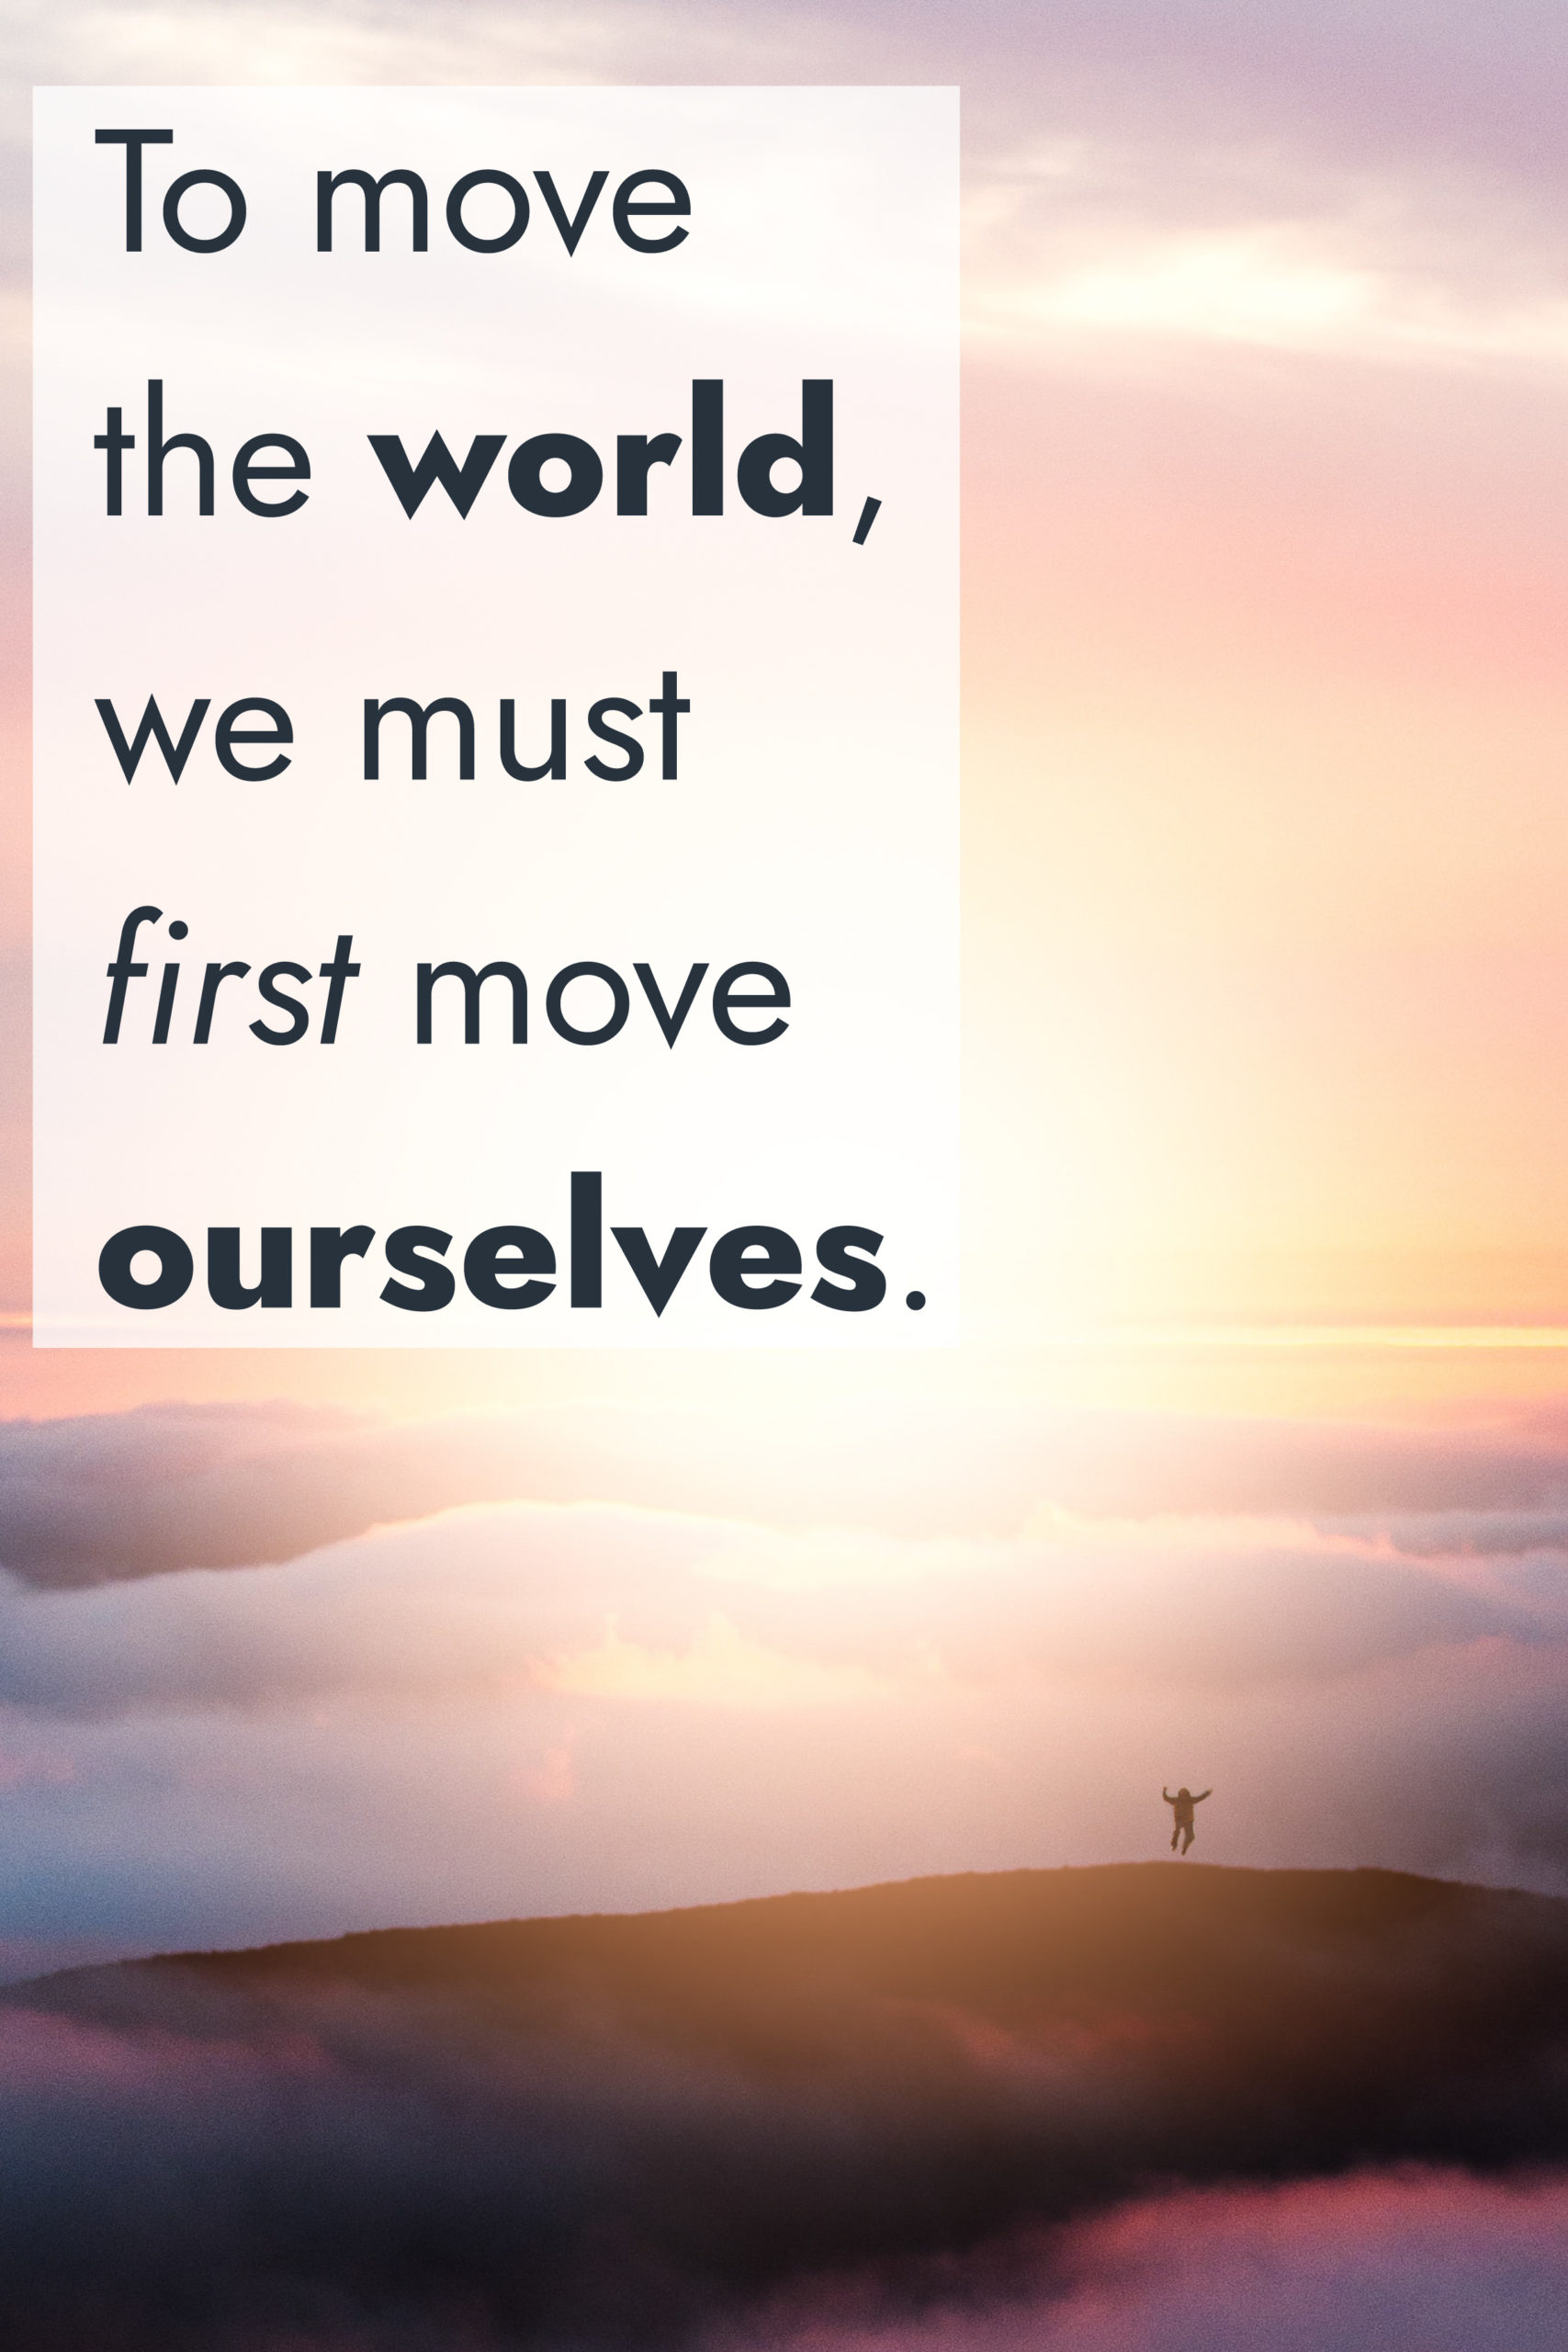 To move the world we must move ourselves. - Socrates Quote